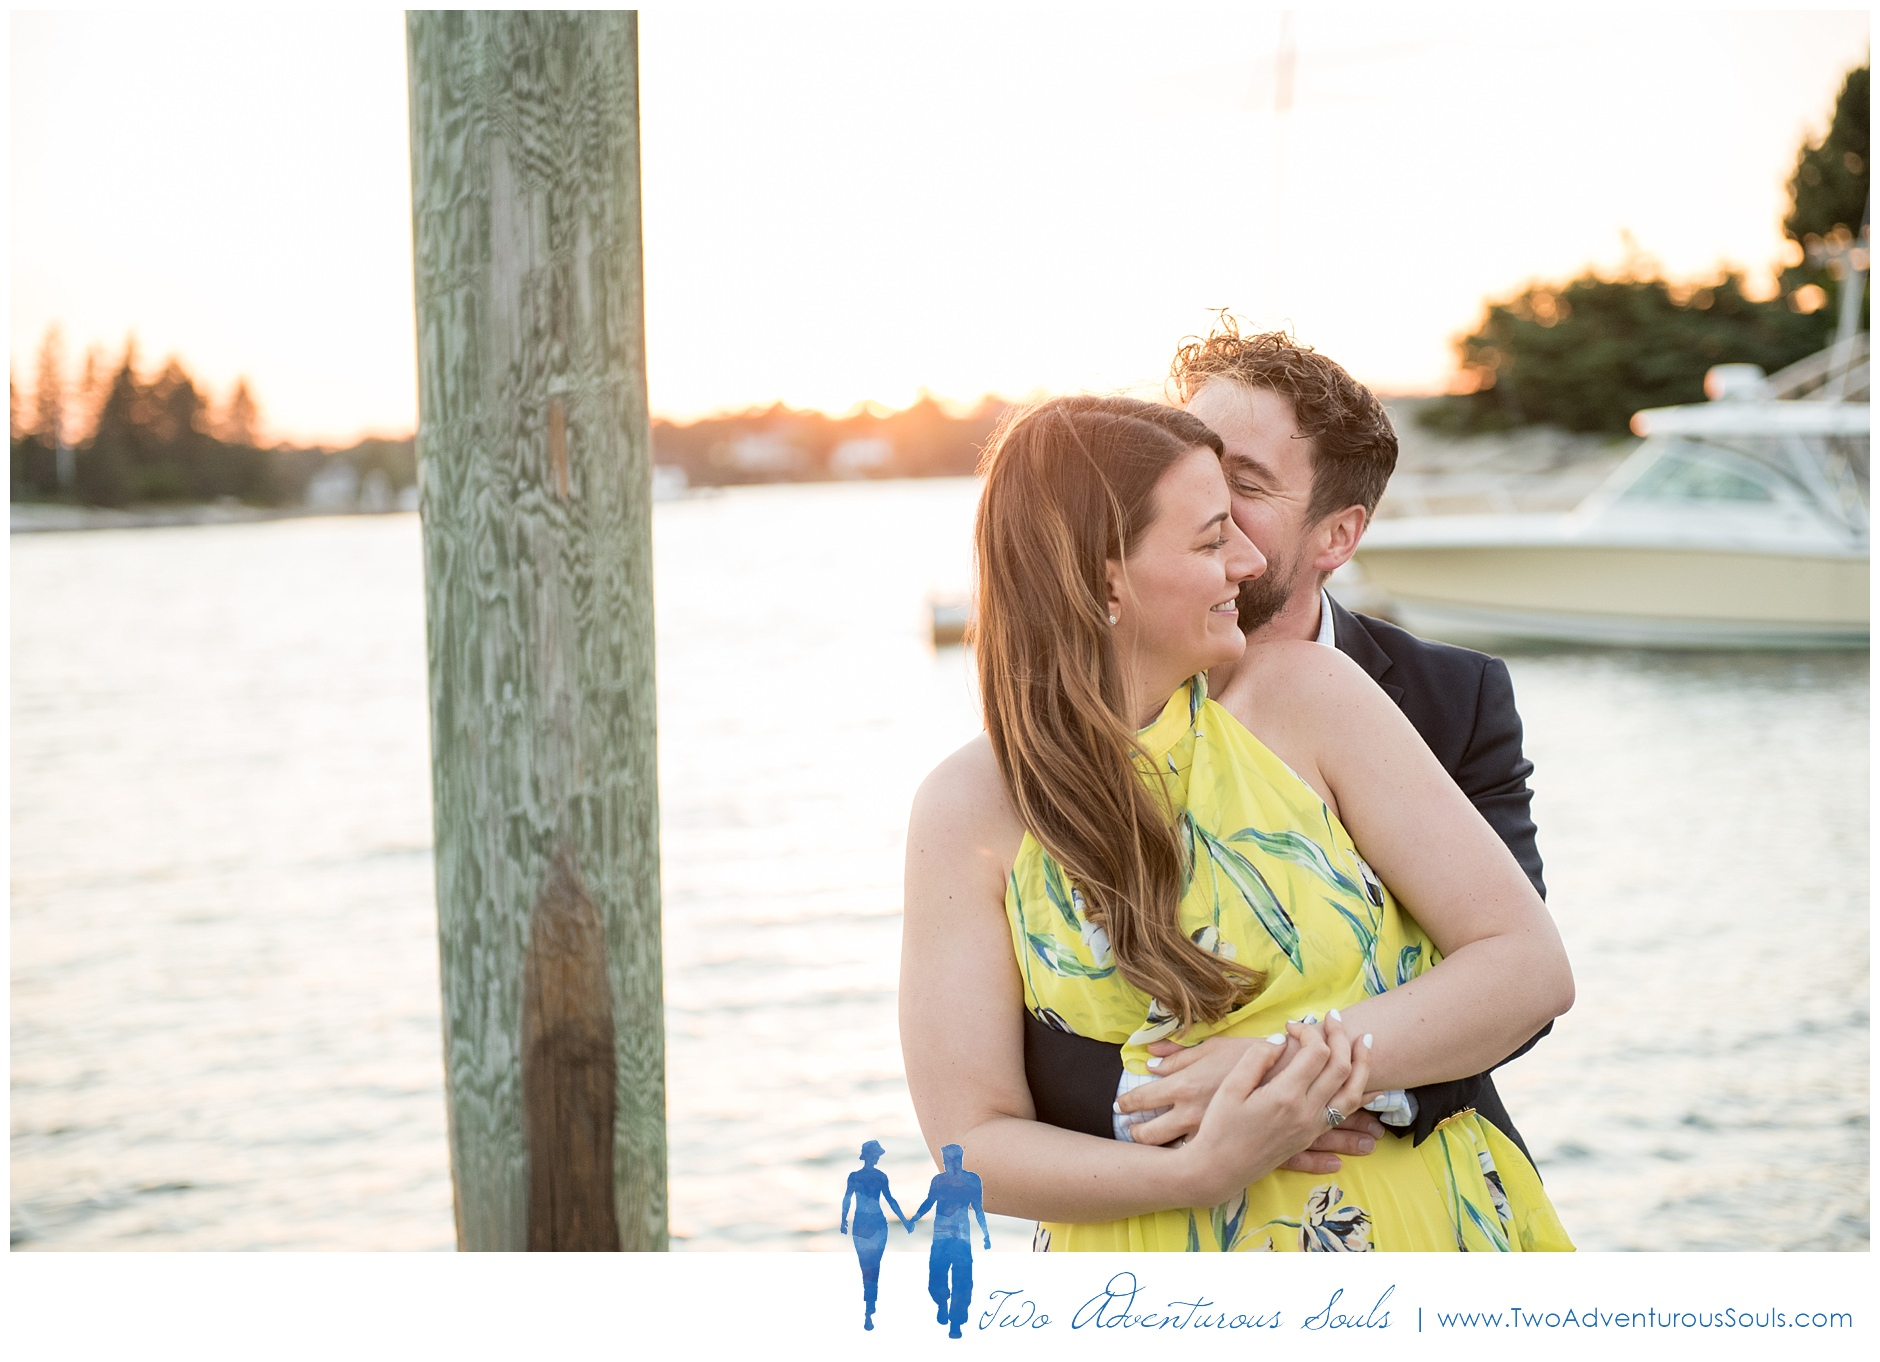 070818 - Leanne & Tyler - engaged-54_Boothbay Harbor Wedding Photographers, Boothbay Engagement Session.jpg